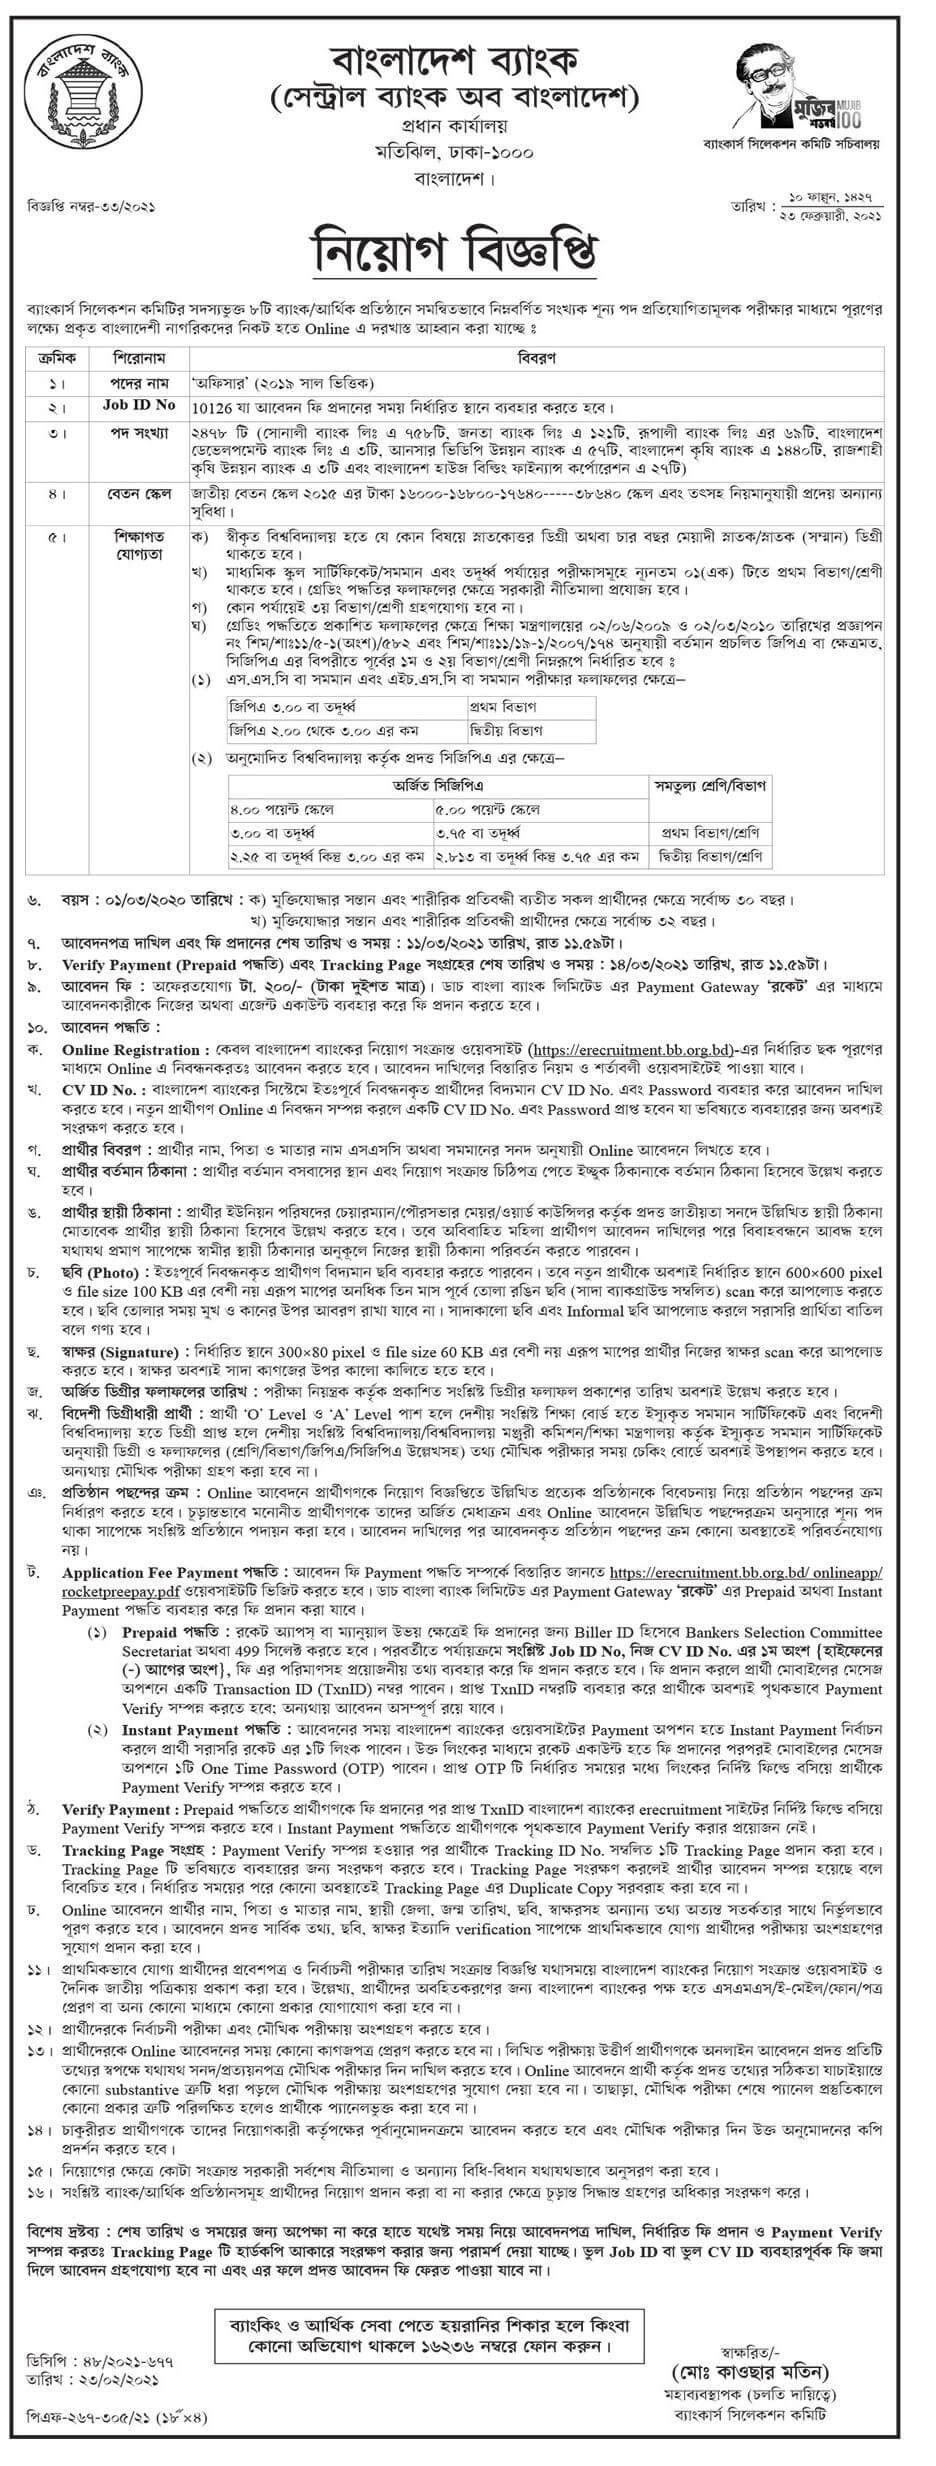 Bangladesh Krishi Bank Jobs Circular 2021 Apply Online